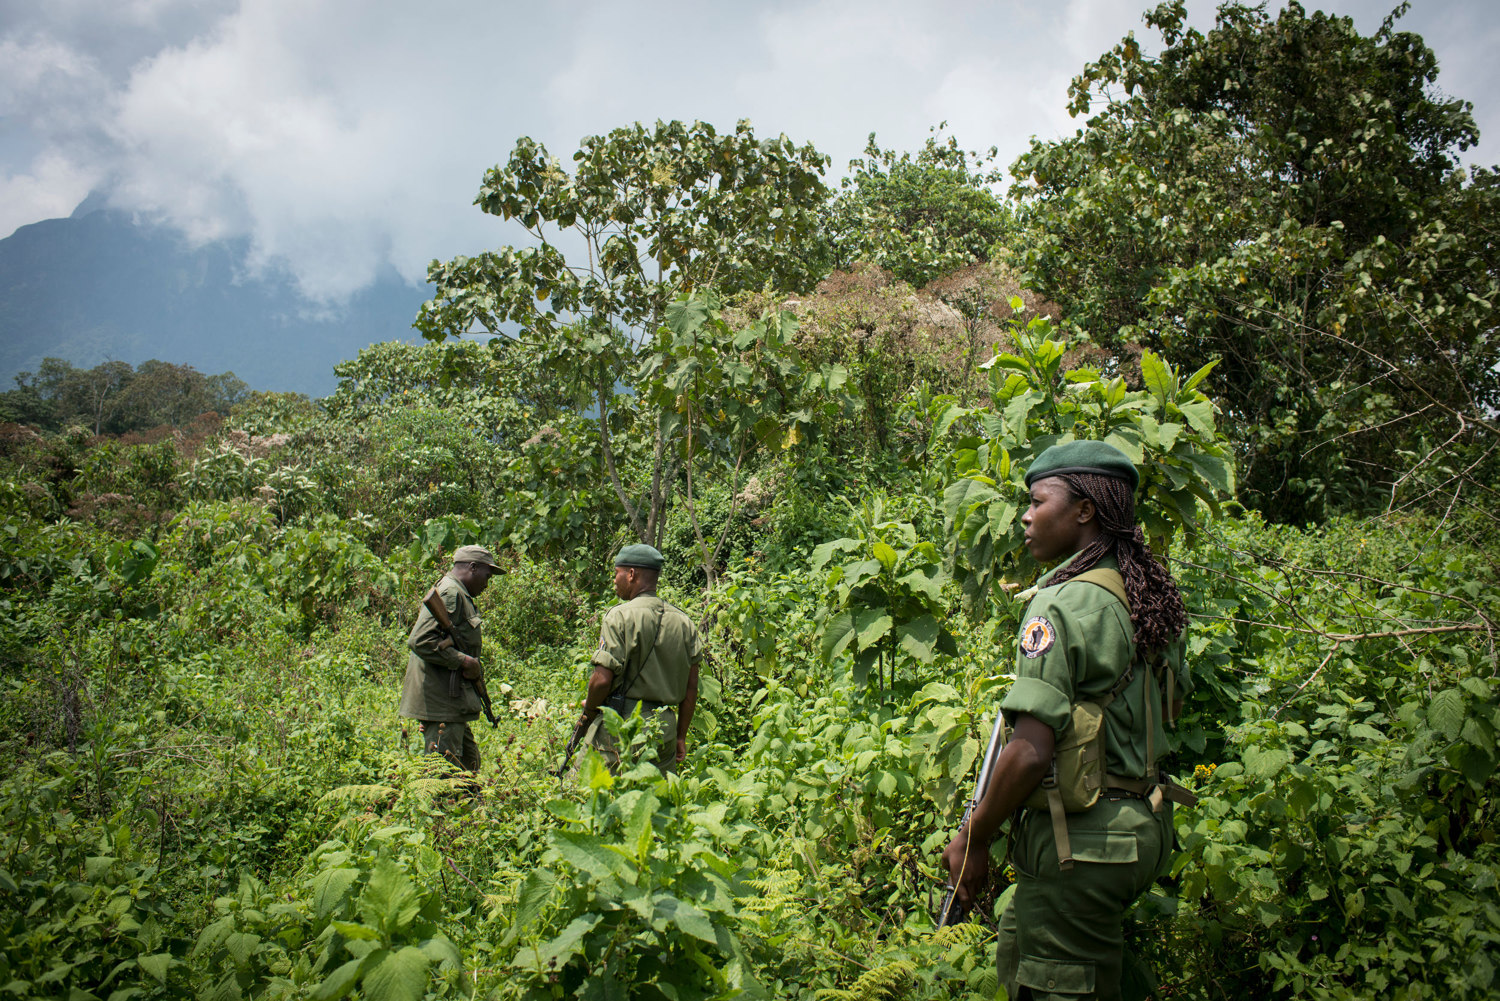 Aline, along with other rangers and park staff visit the gorilla's in the parks Mikeno sector. Mt. Mikeno can be seen in the distance.